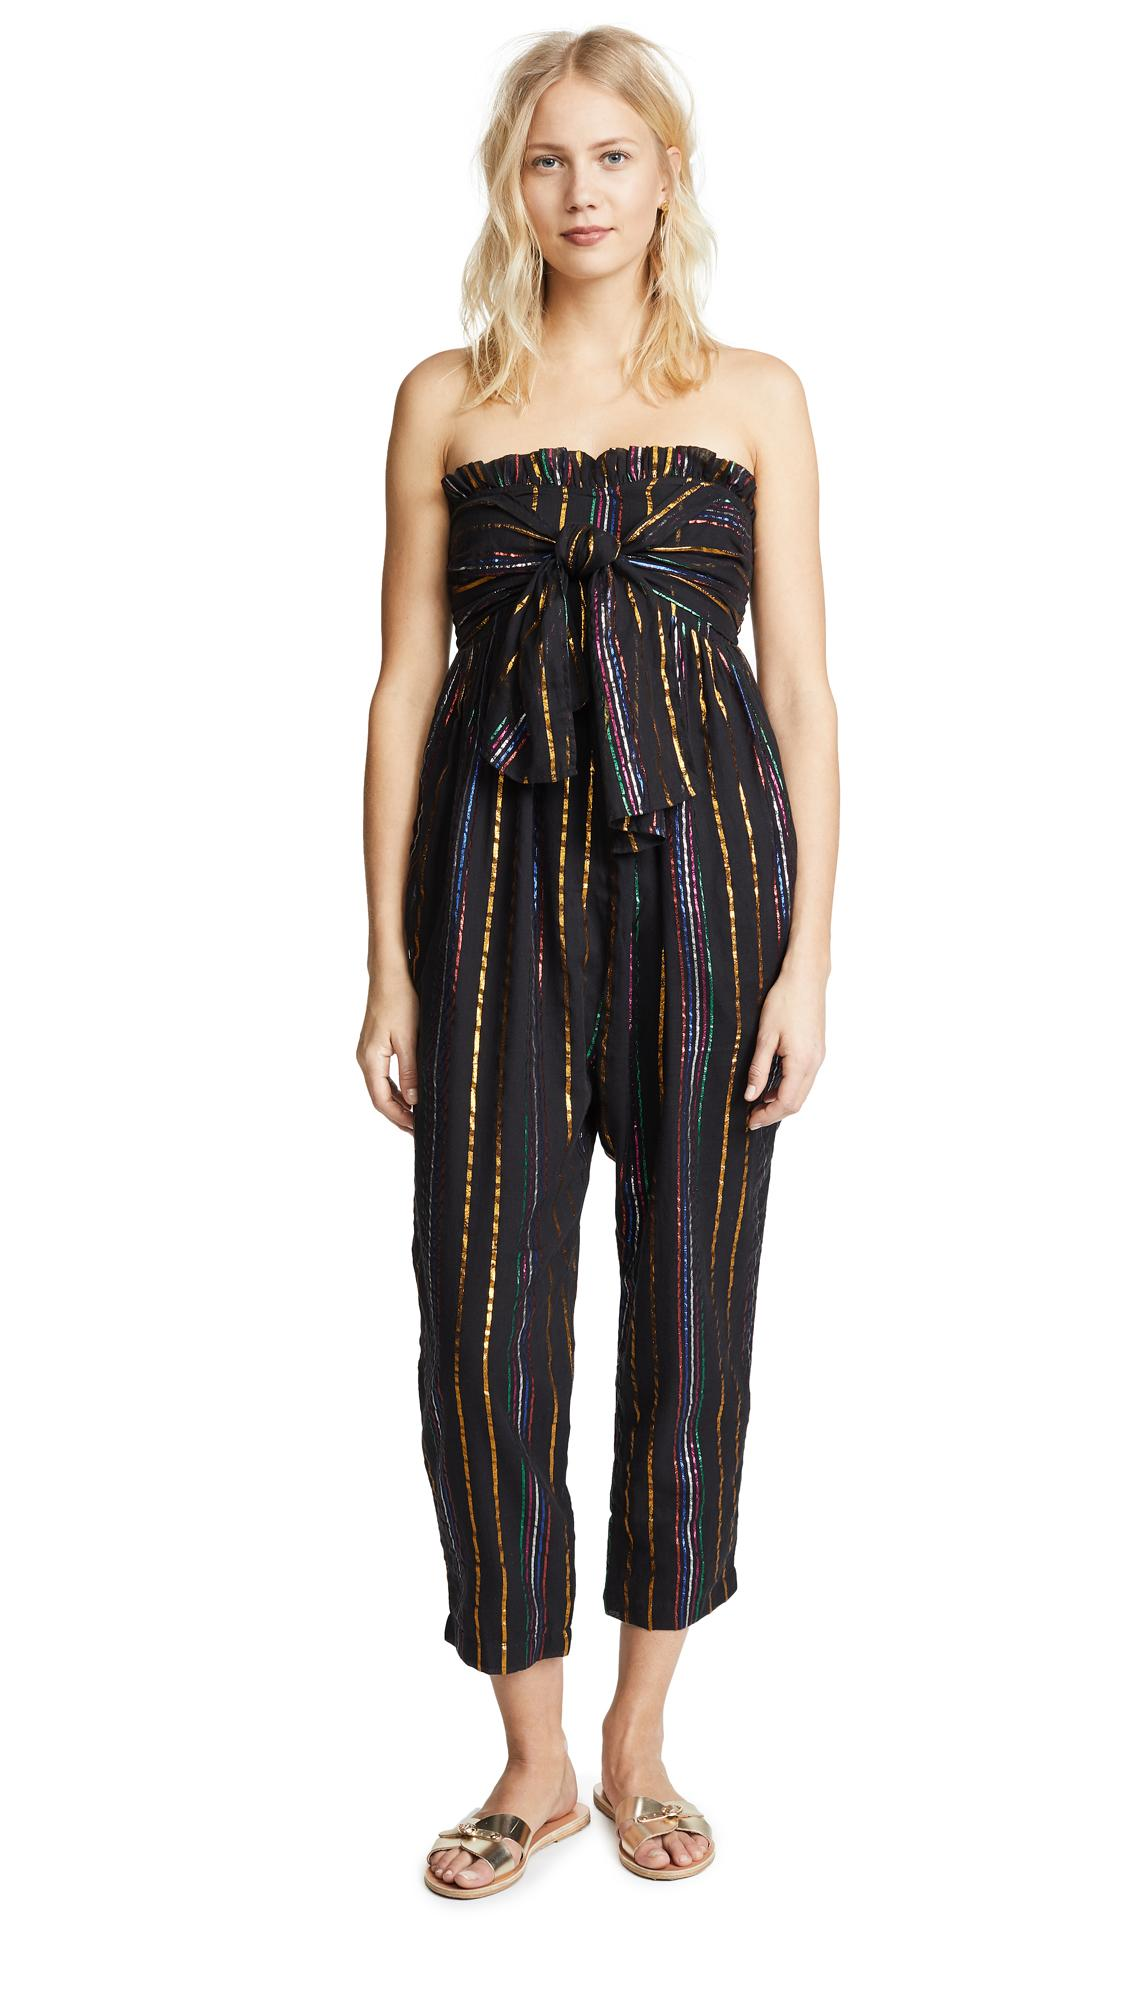 Apiece Apart Gipsea Sleeveless Jumpsuit In Black Fez Stripe